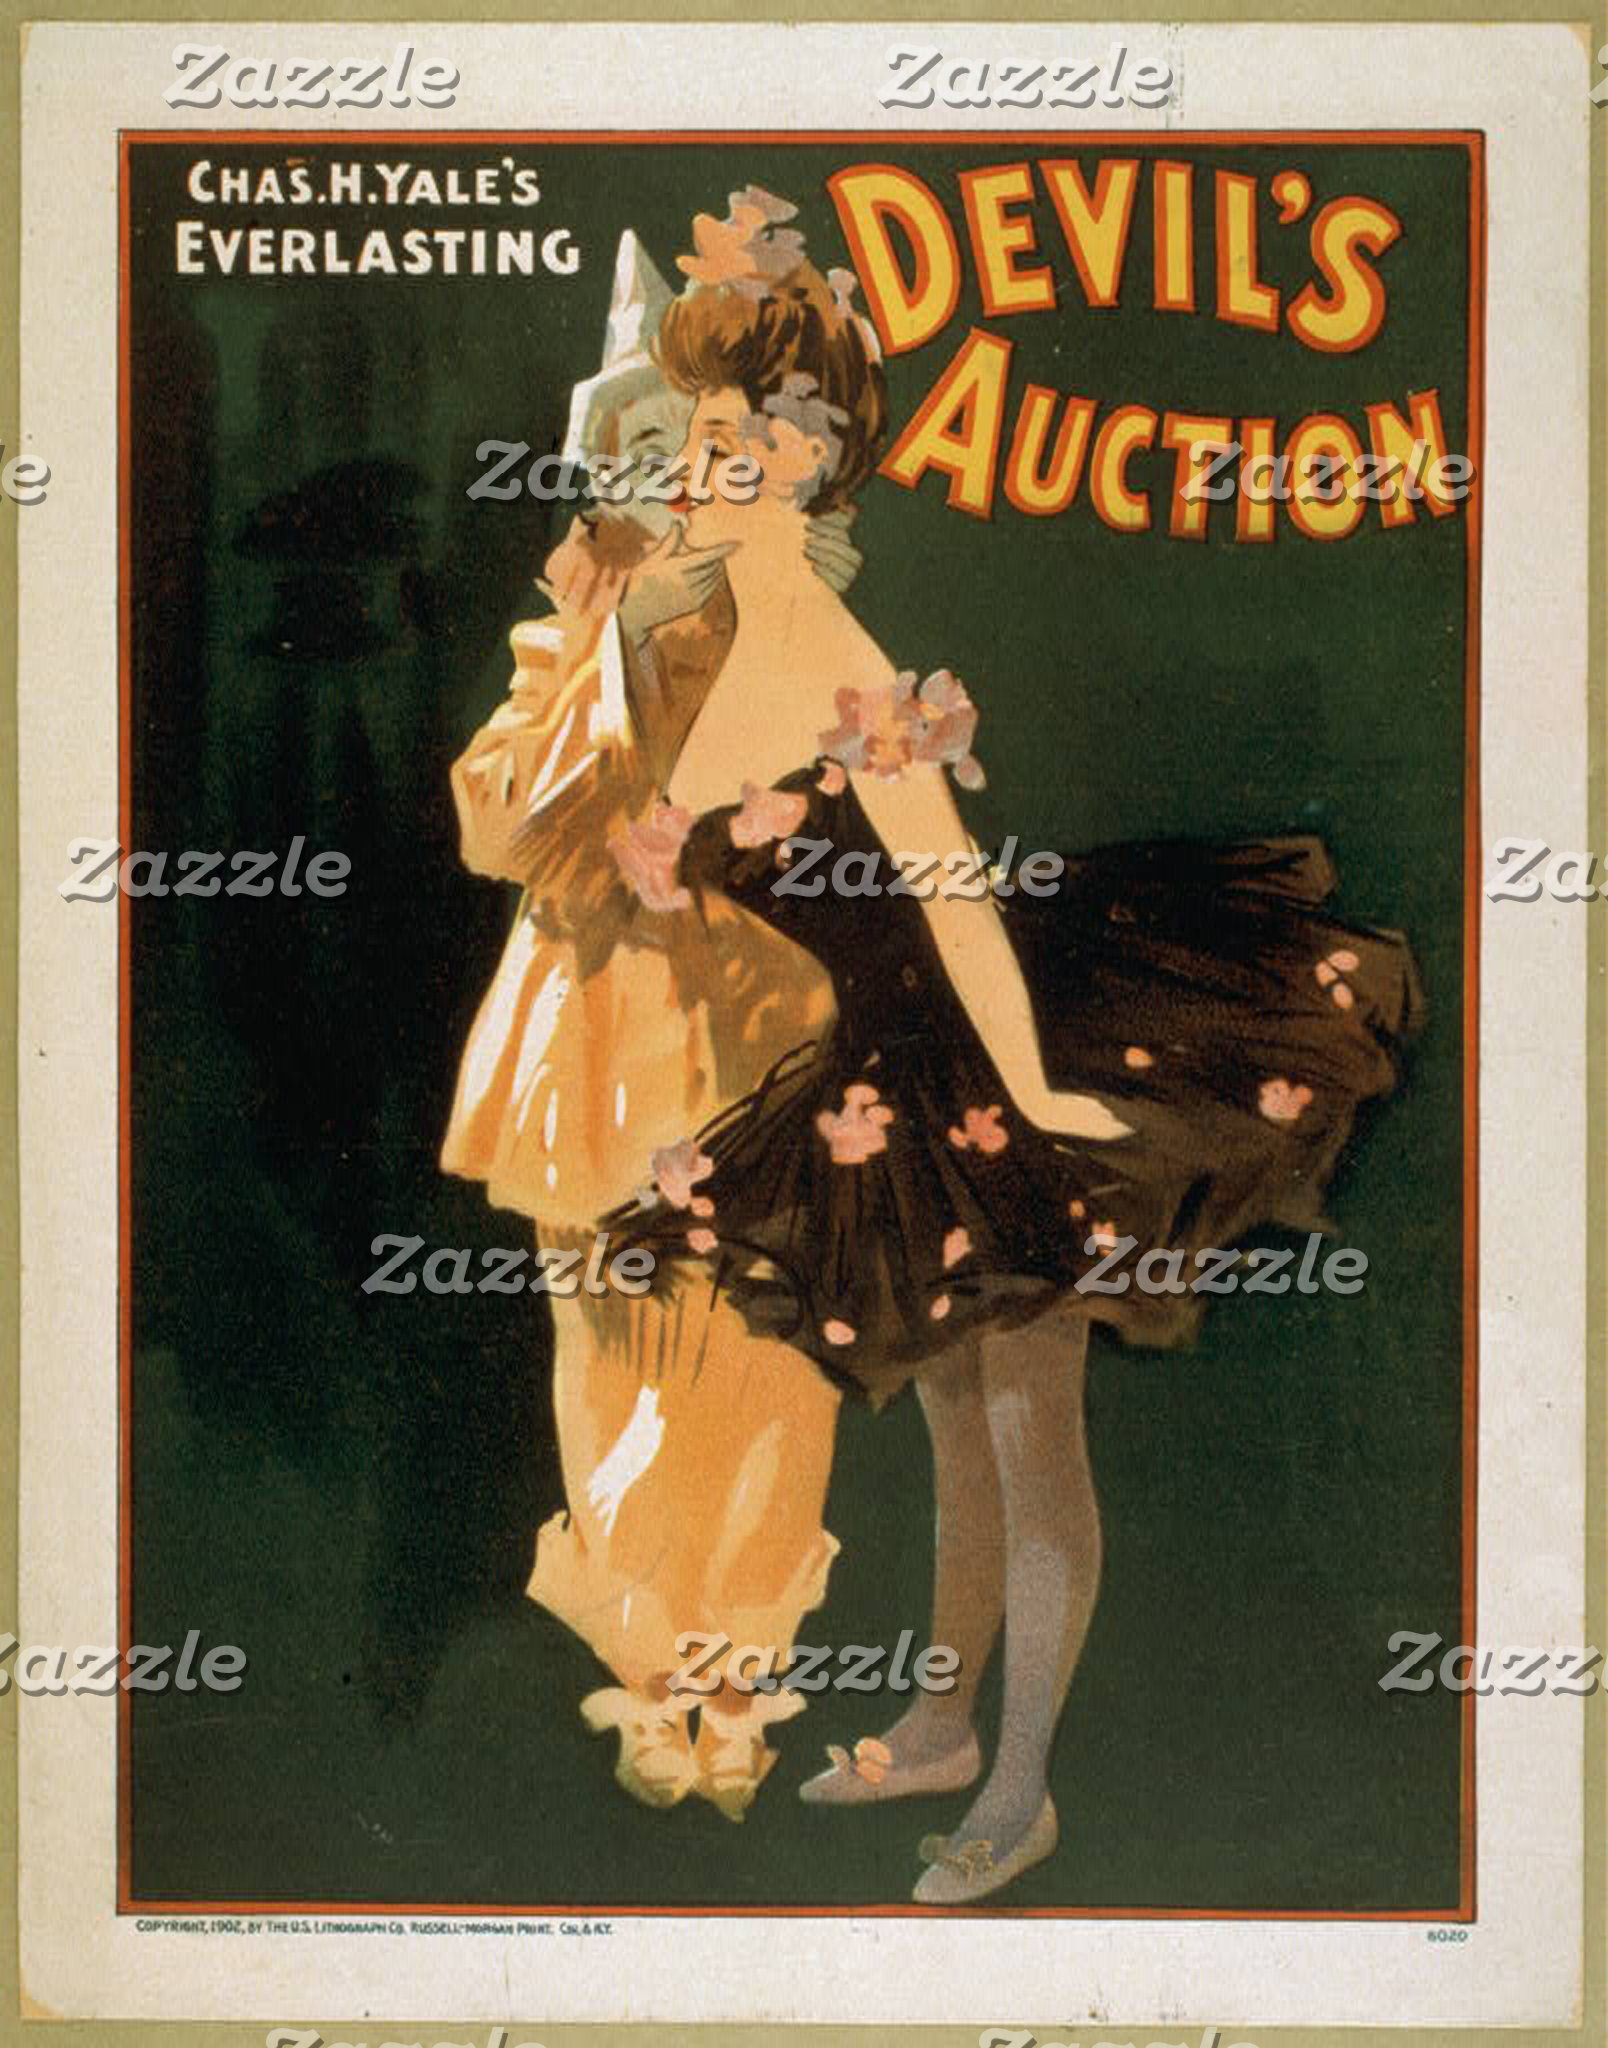 Everlasting Devil's Auction